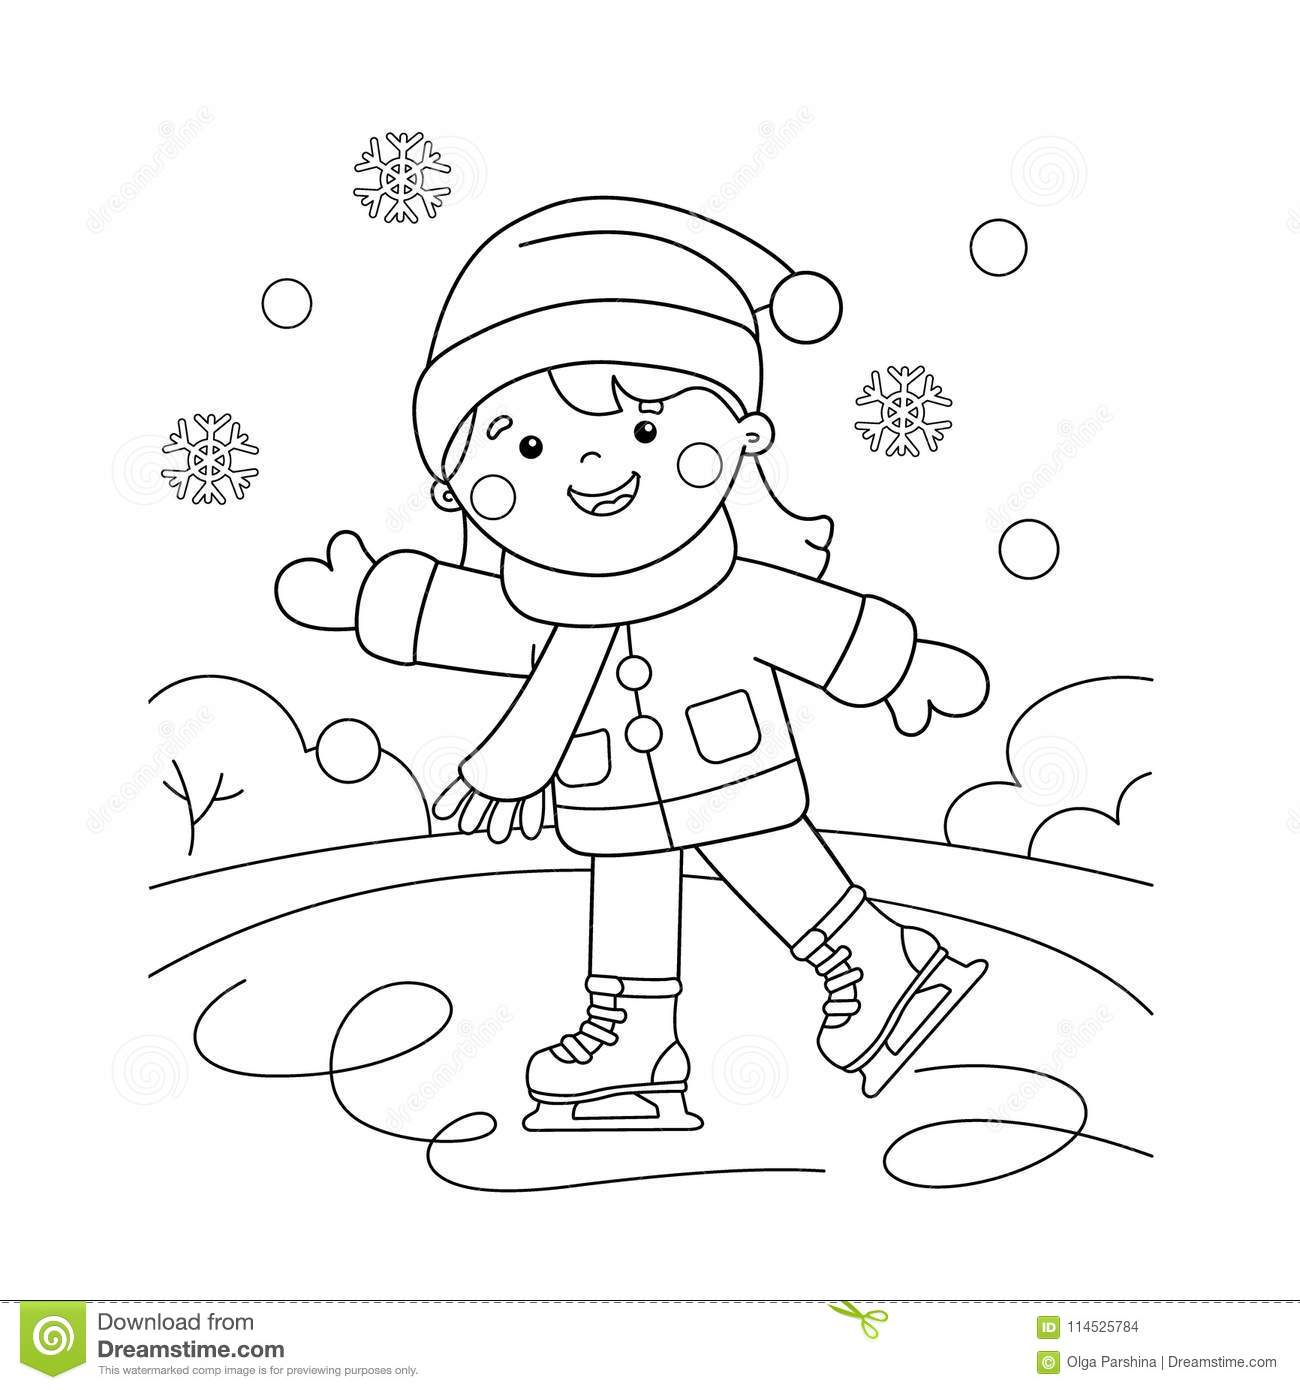 coloring page outline of cartoon girl skating winter sports coloring book for kids stock. Black Bedroom Furniture Sets. Home Design Ideas